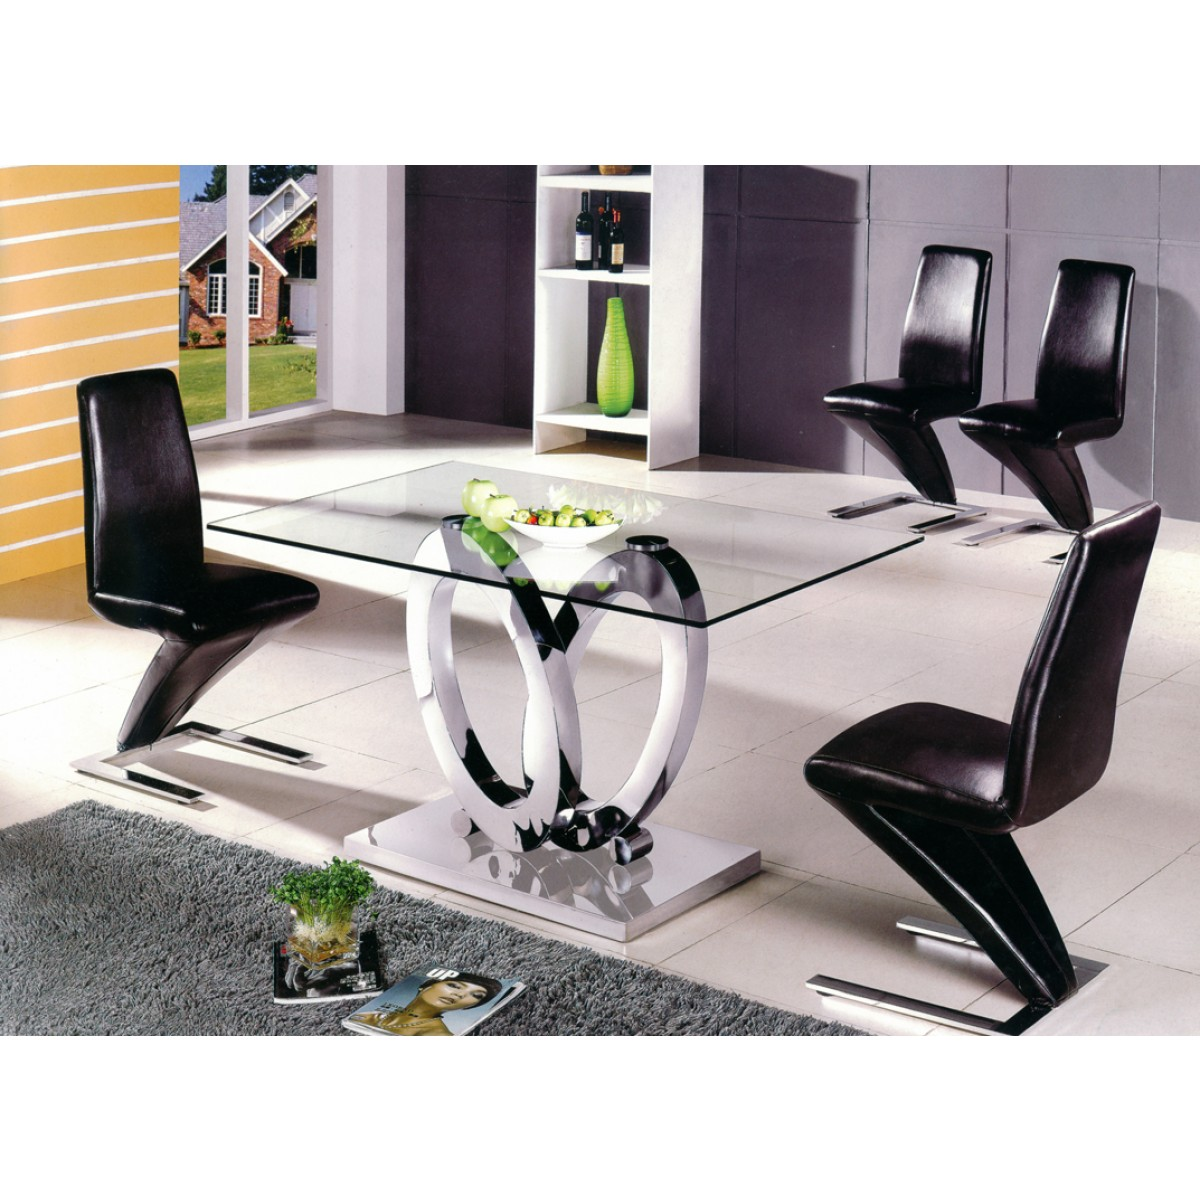 Table manger design ellipse taille au choix tables for Tables de salle a manger